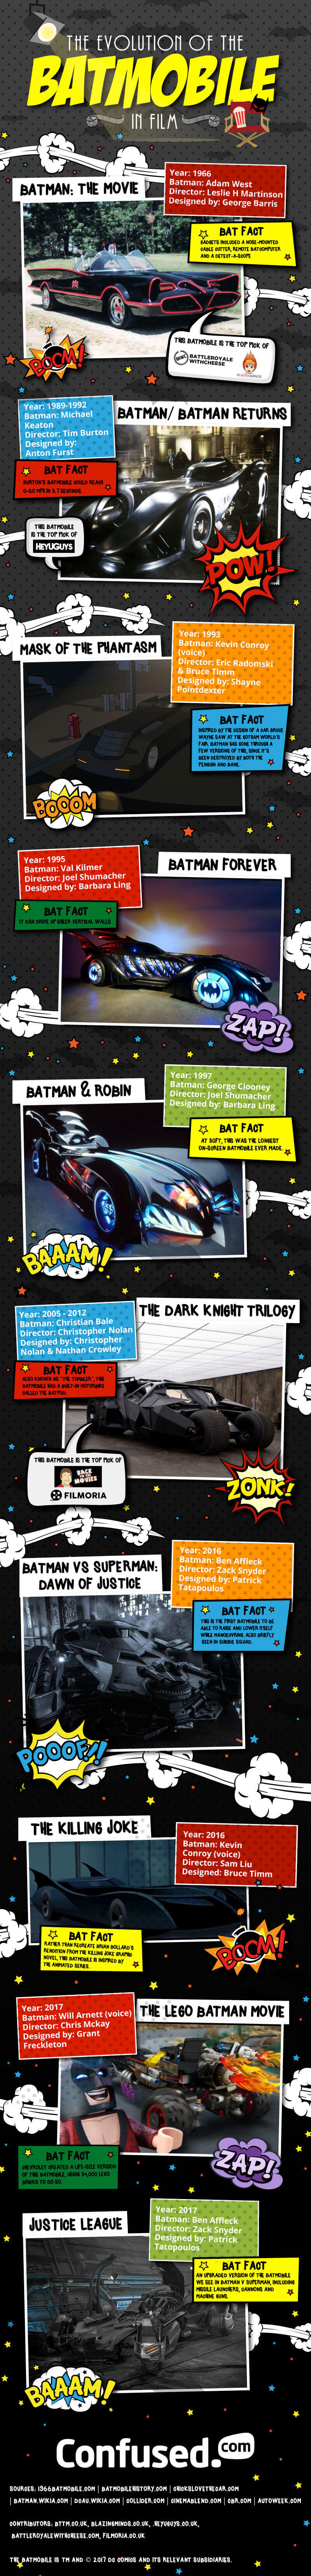 The Evolution of the Batmobile in Film by Confused.com